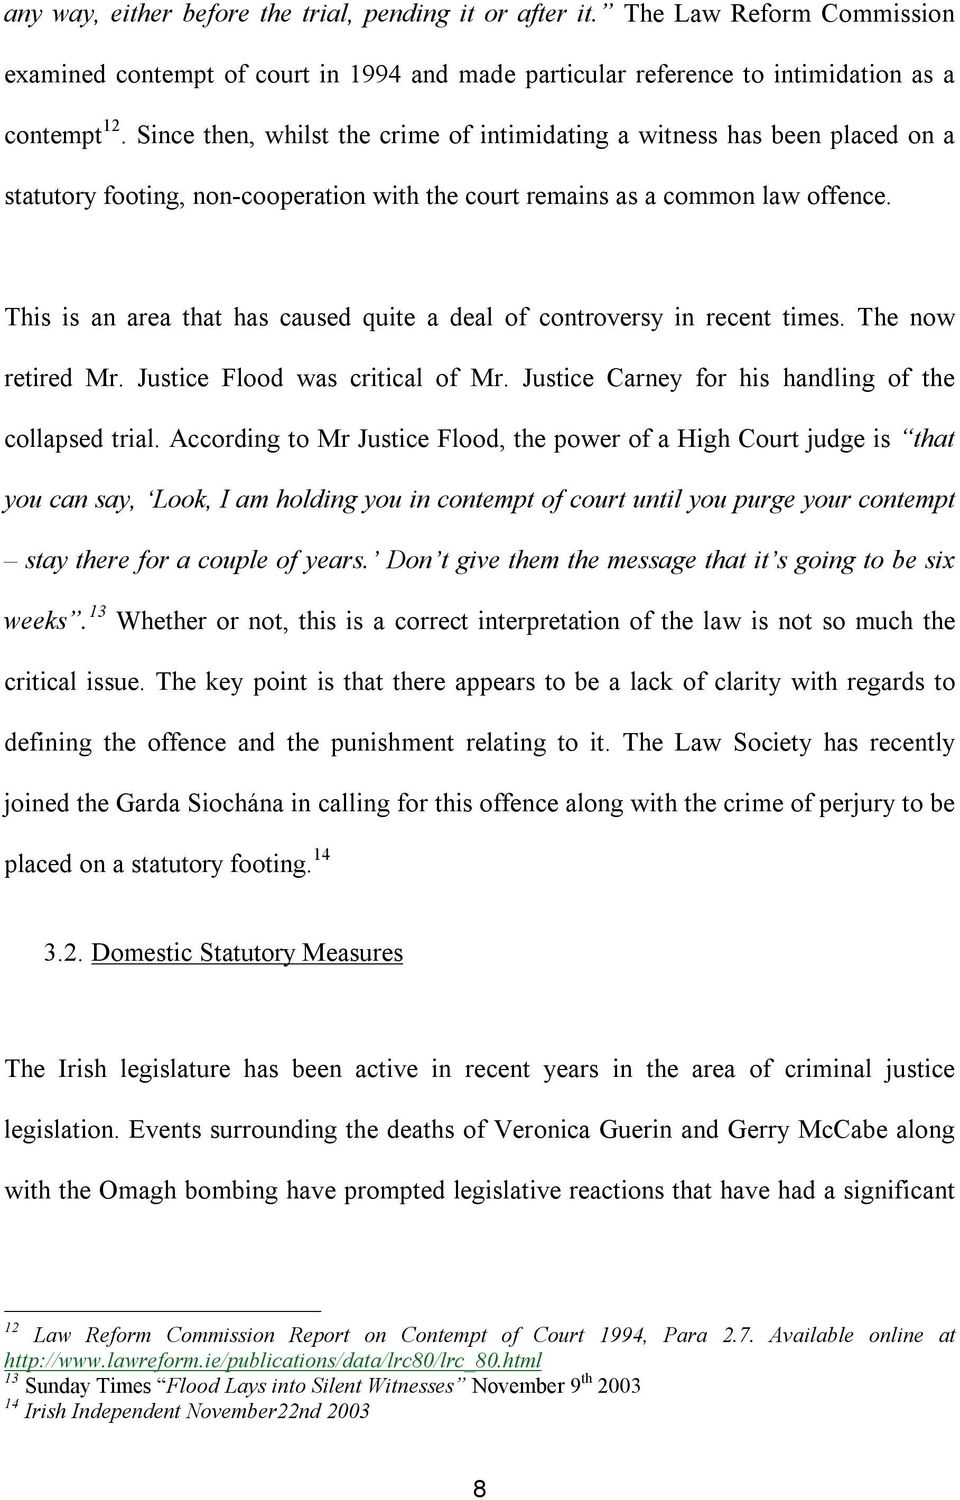 This is an area that has caused quite a deal of controversy in recent times. The now retired Mr. Justice Flood was critical of Mr. Justice Carney for his handling of the collapsed trial.